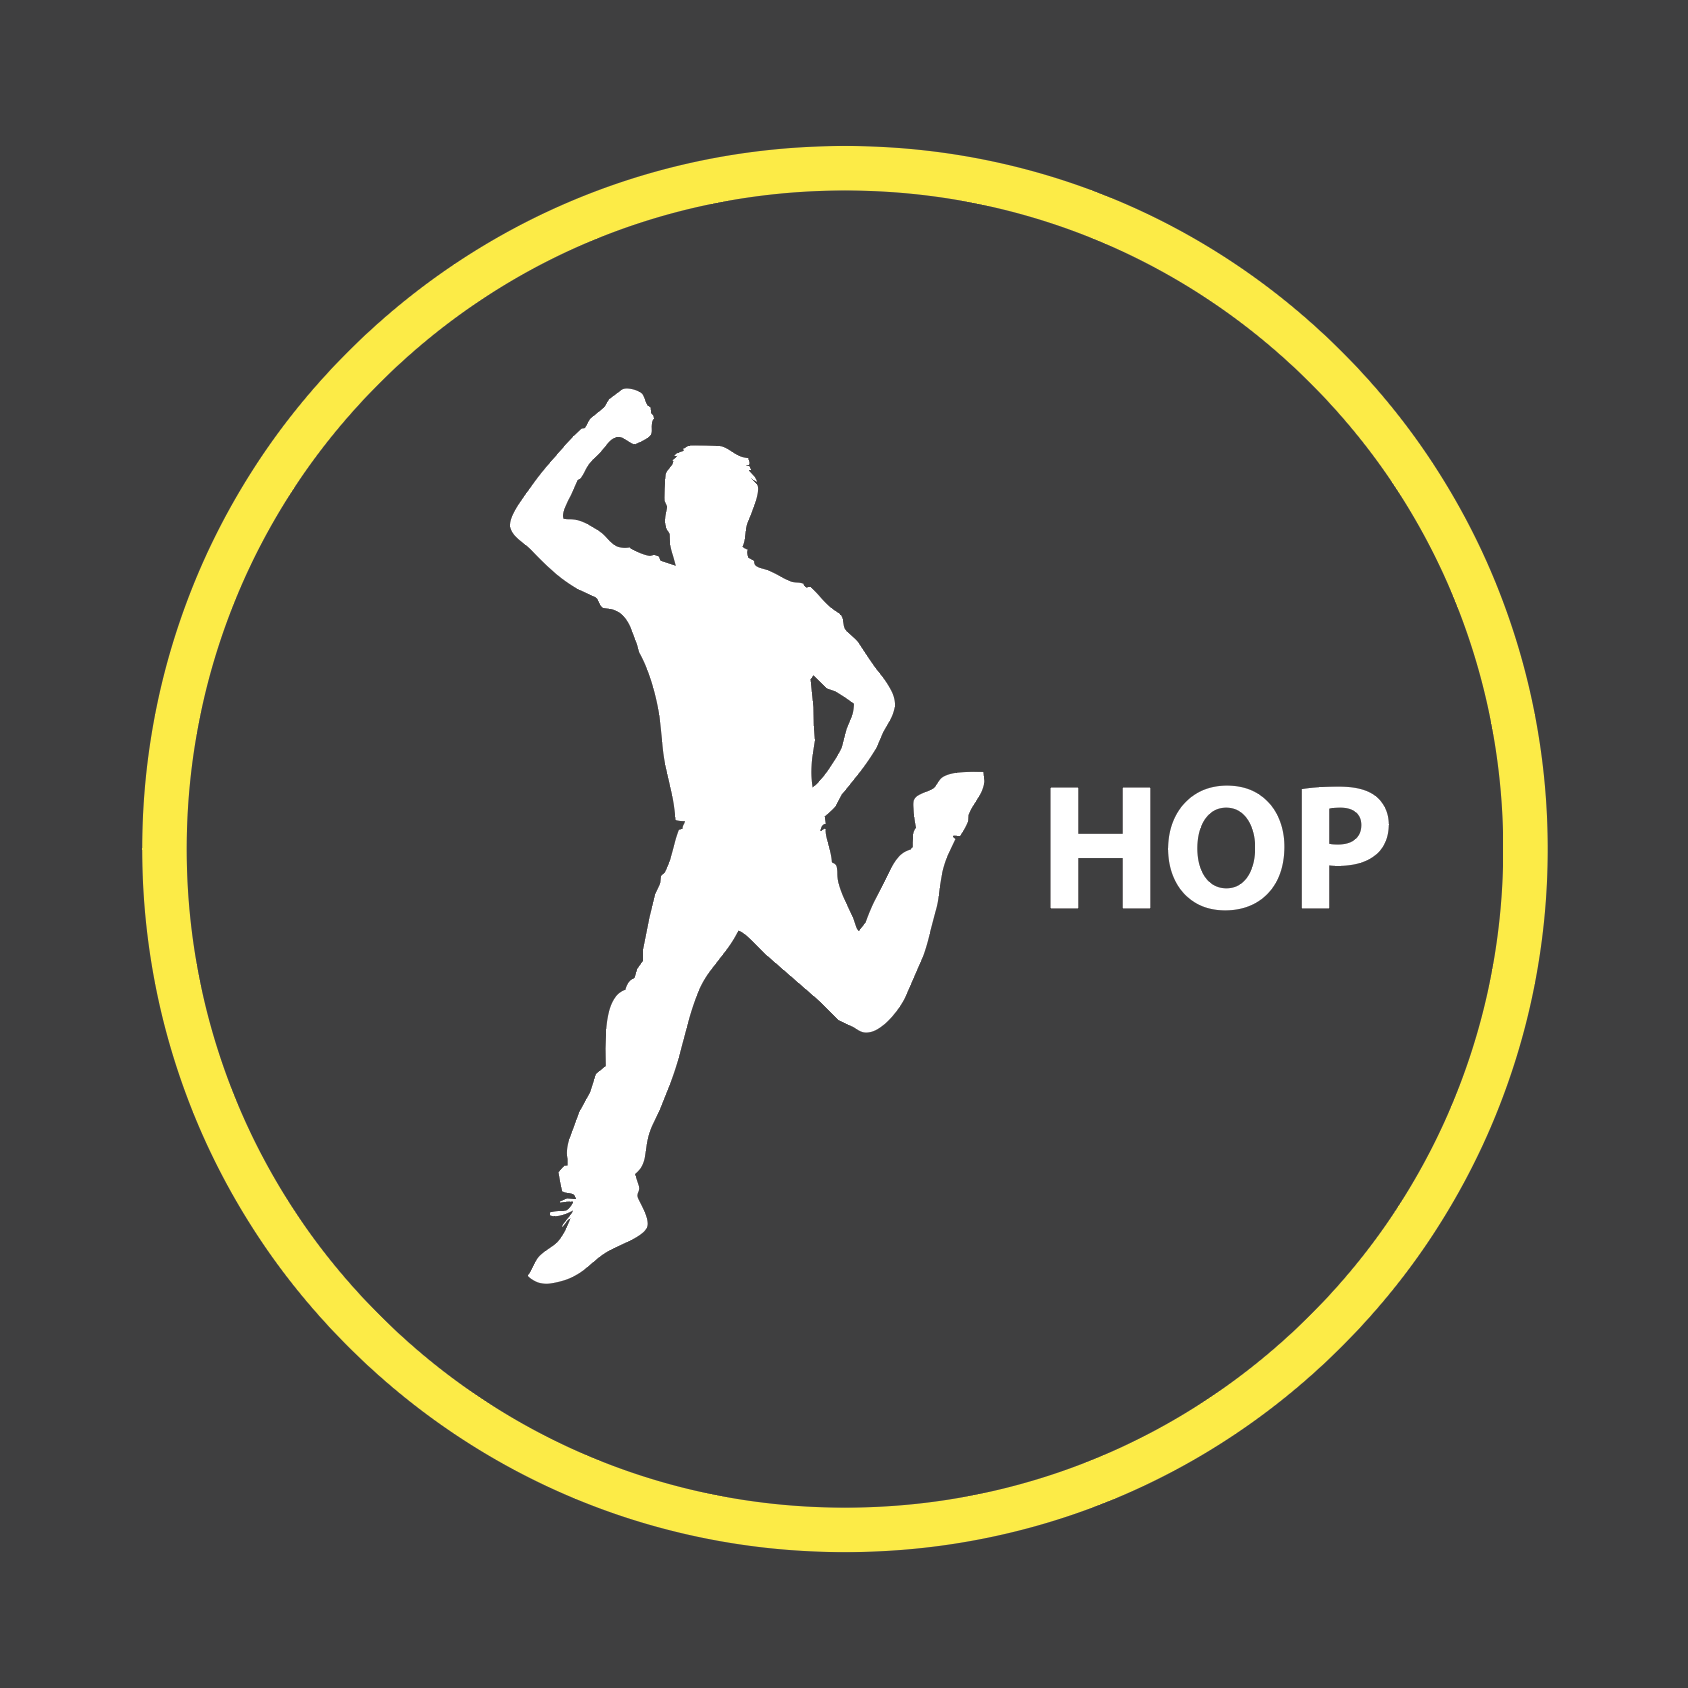 An image of a Hop Outline Active Spot